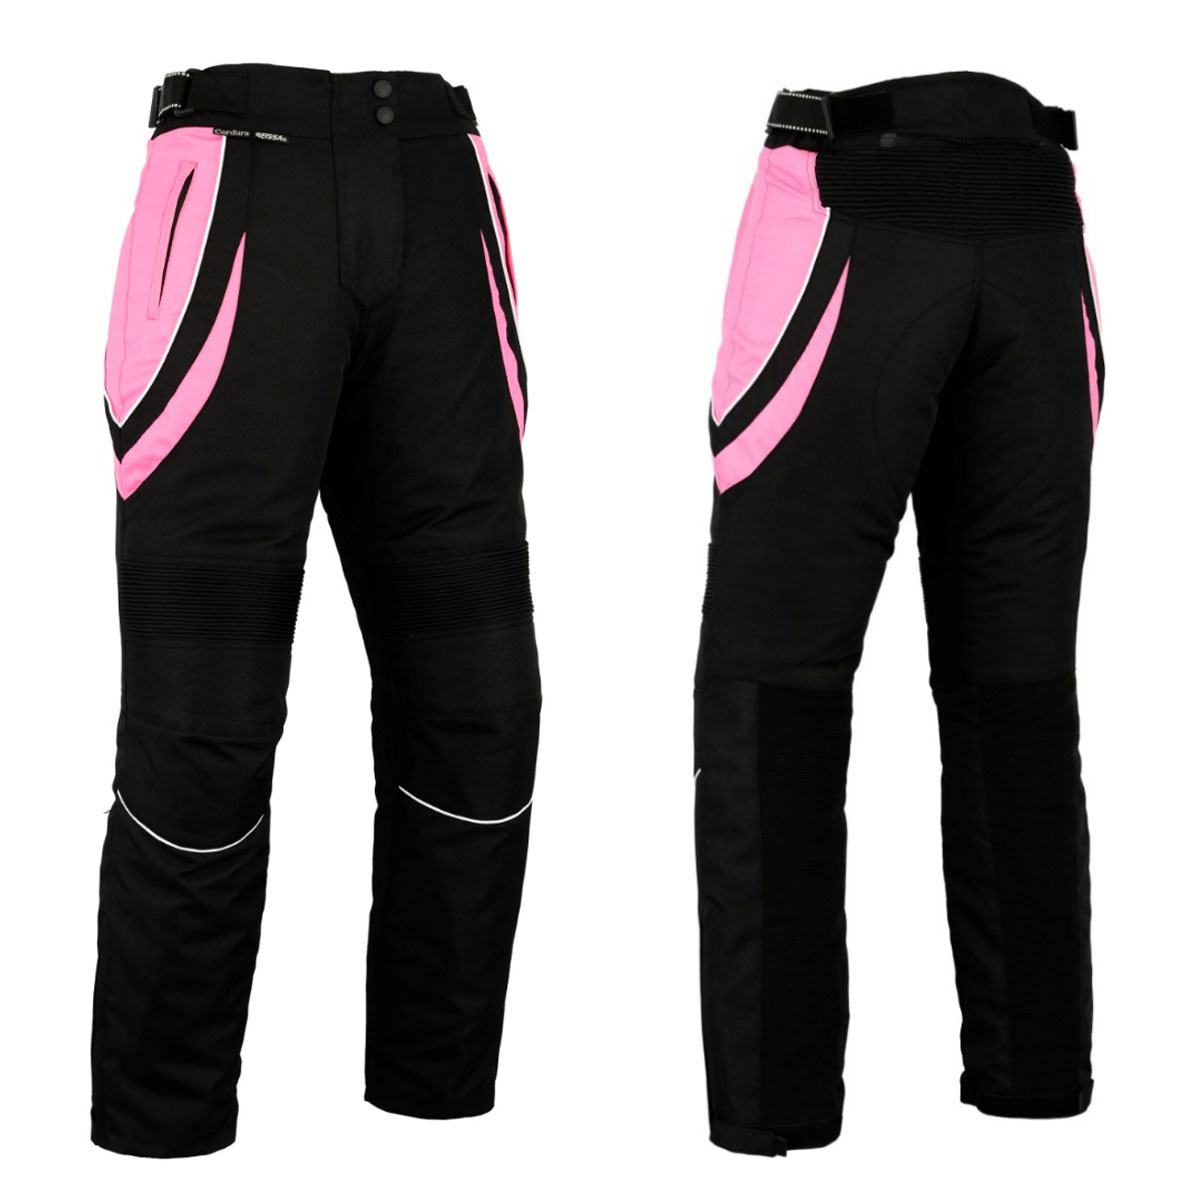 BLACK FEMALE CORDURA PANT WITH PINK DESIGN